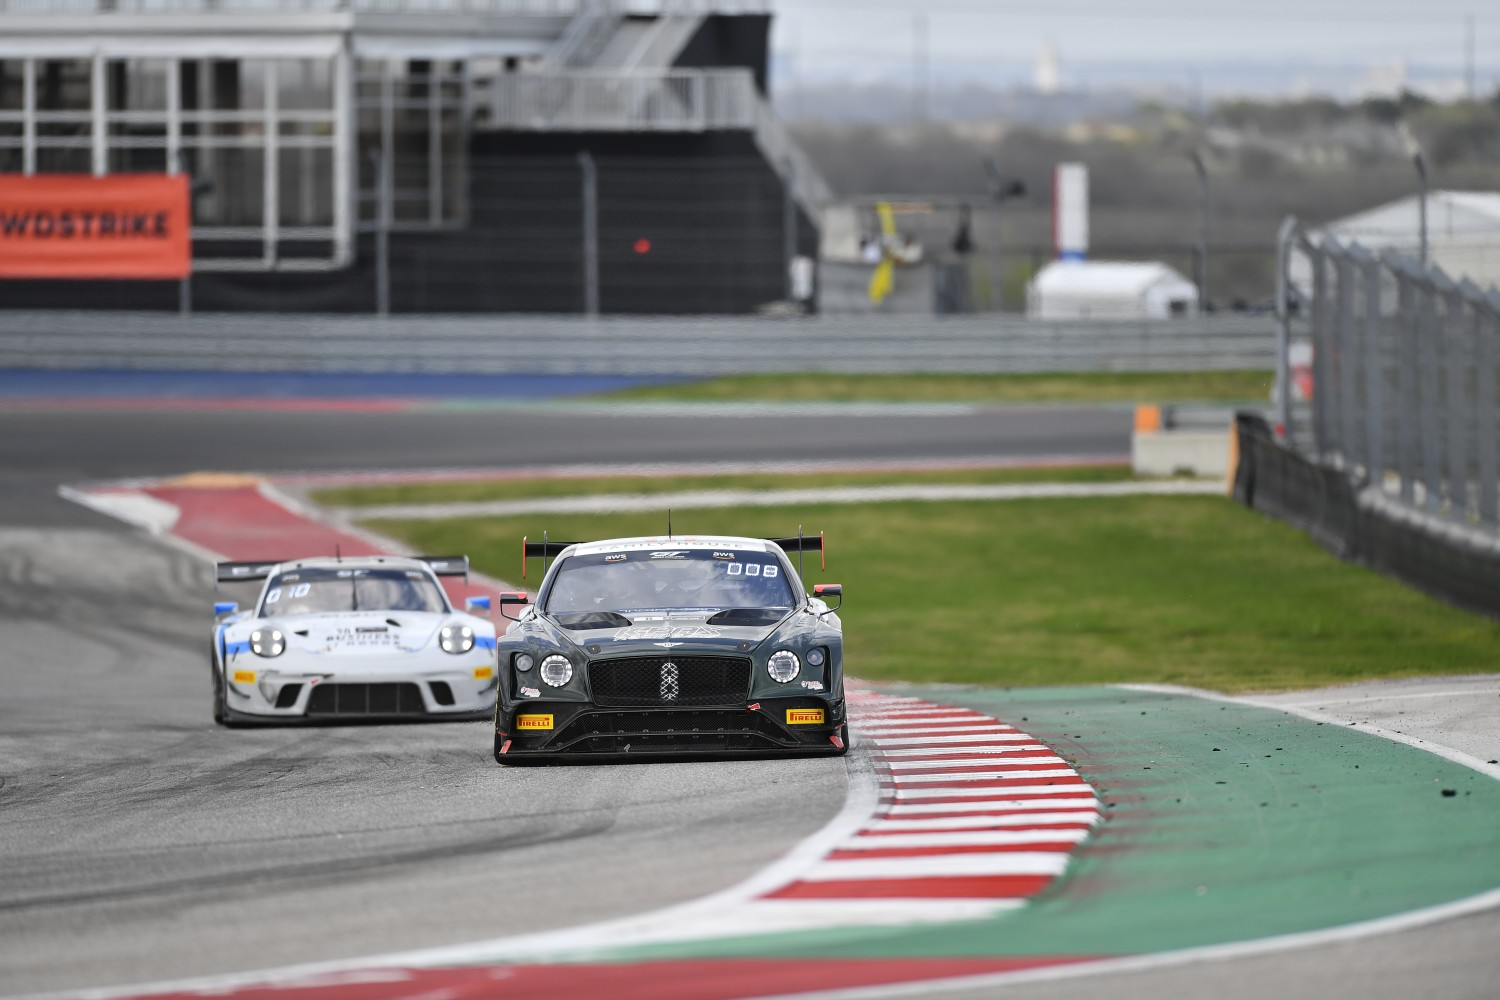 #8 GT3 Pro-Am, K-PAX Racing, Patrick Byrne, Guy Cosmo, Bentley Continental GT3, 2020 SRO Motorsports Group - Circuit of the Americas, Austin TX  | SRO Motorsports Group